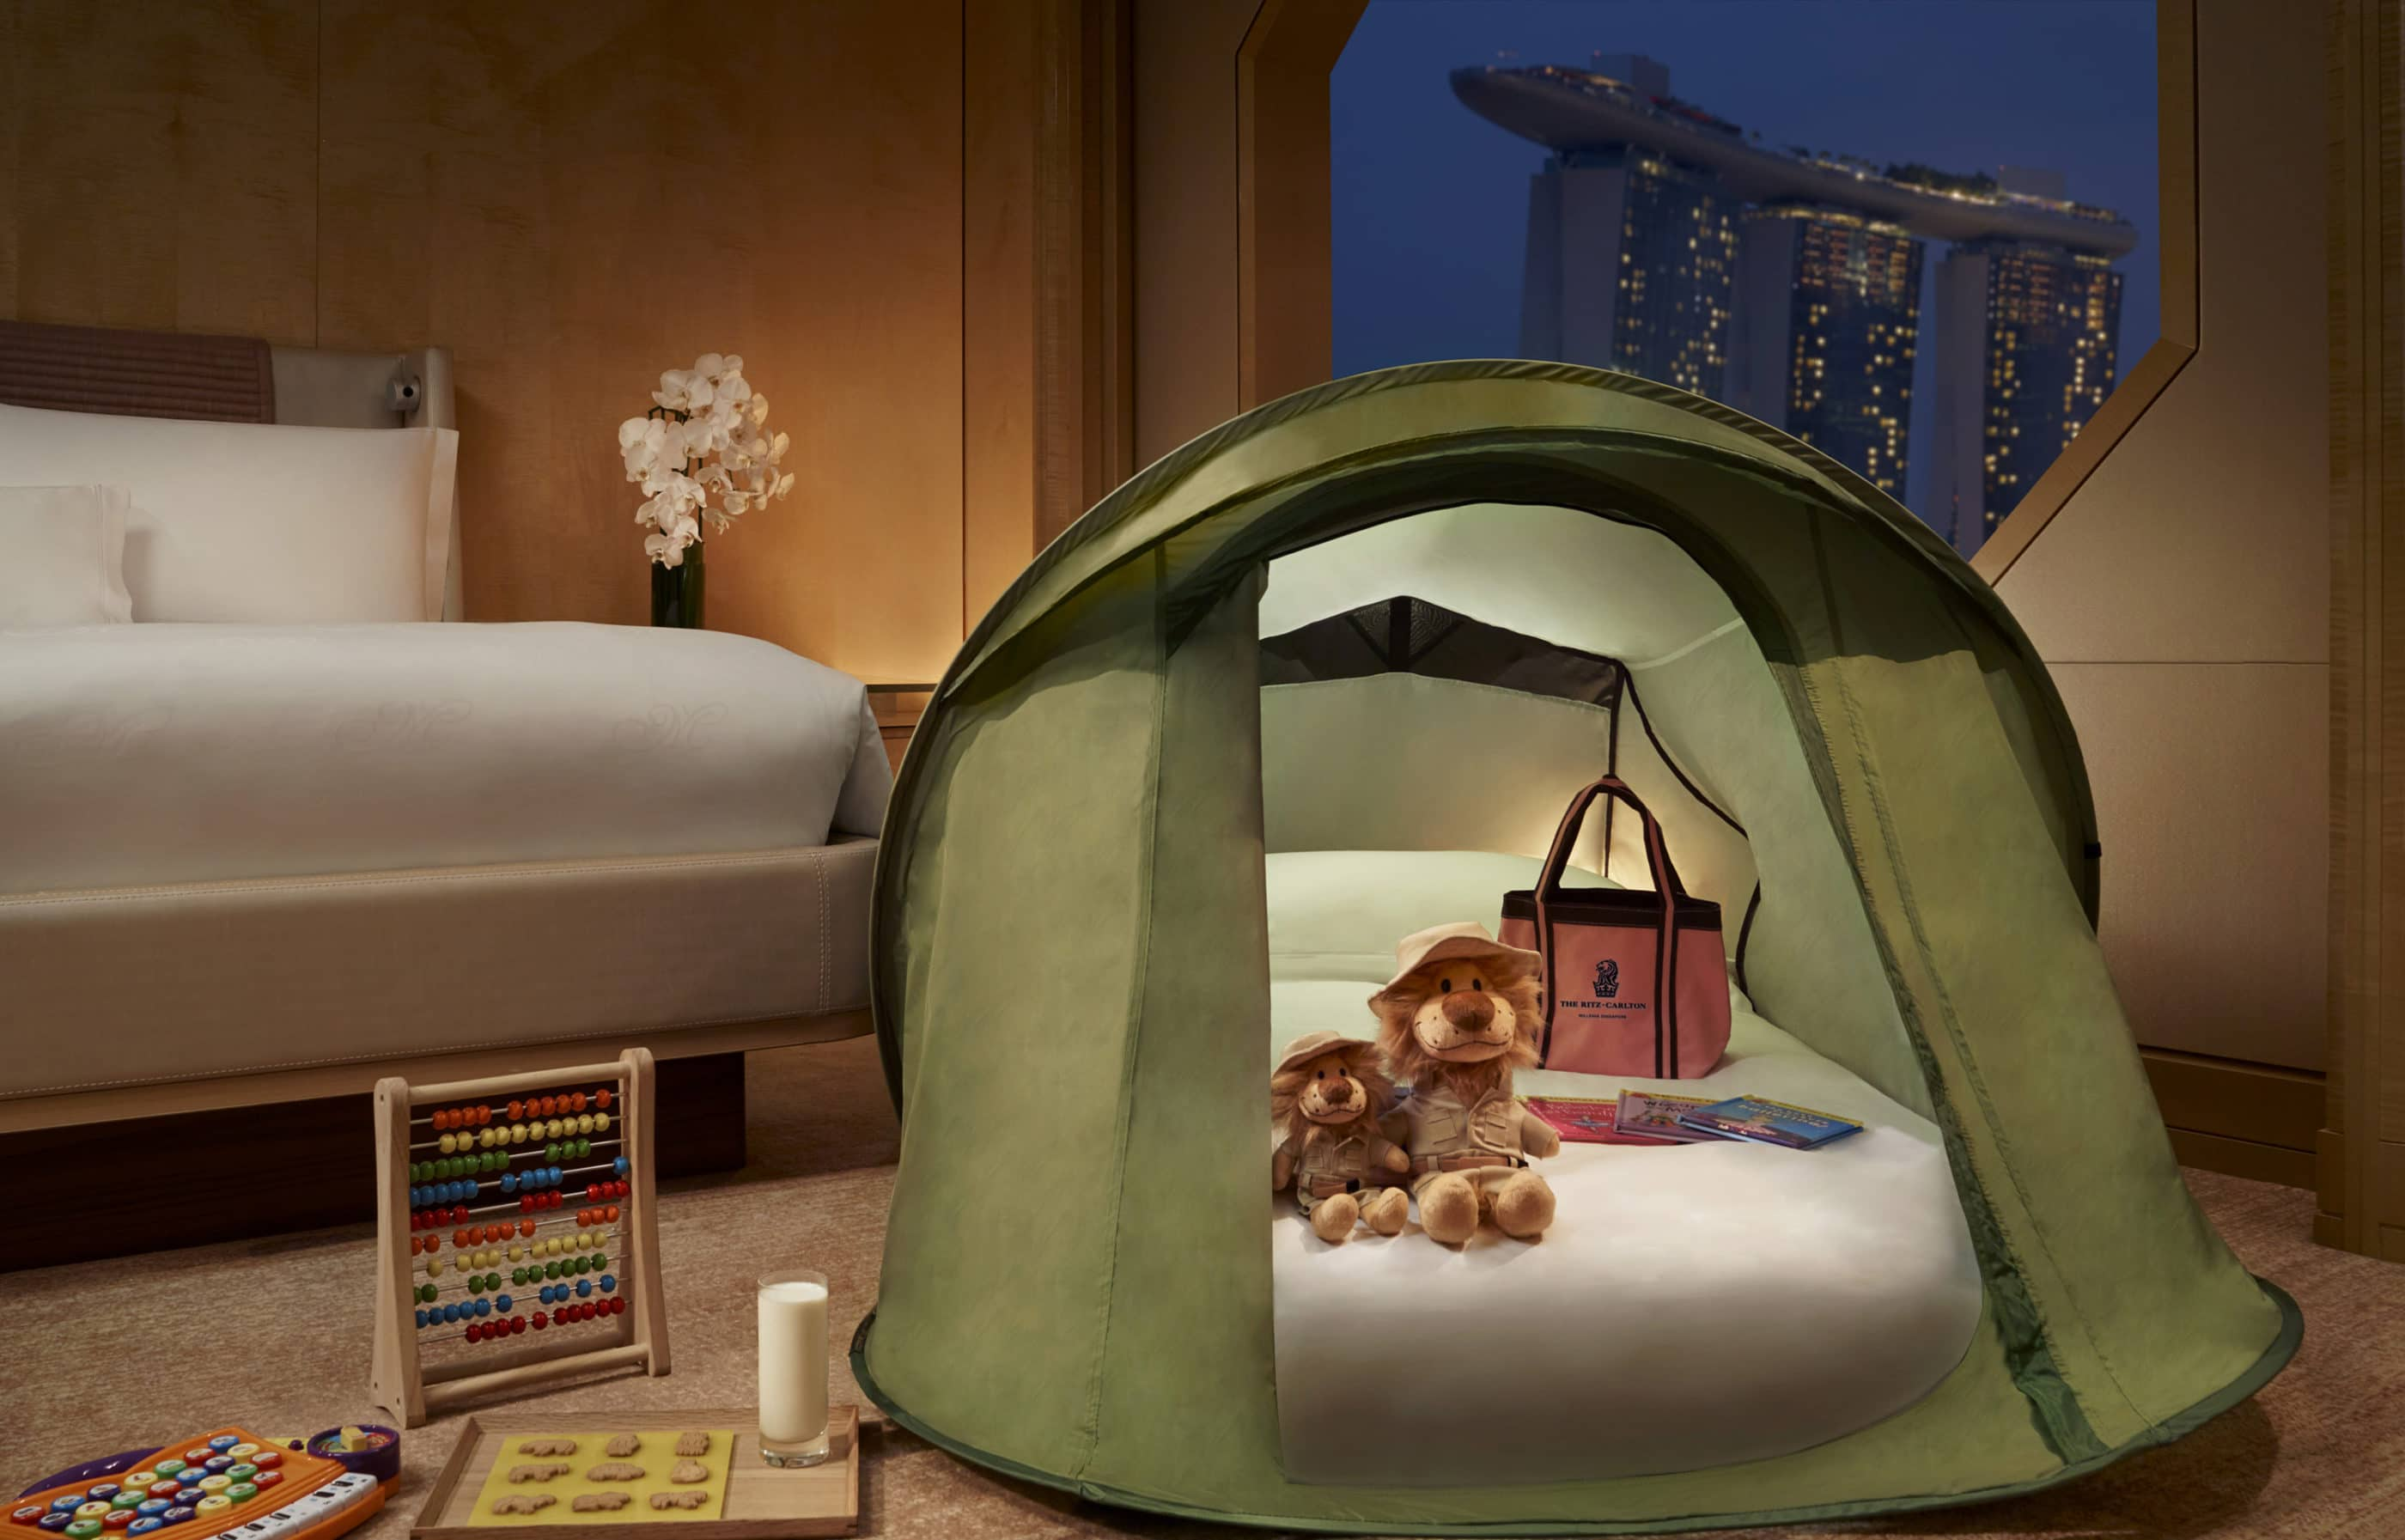 A Ritz Kids pop-up tend with stuffed animals and a small mattress inside for small kids to sleep in.